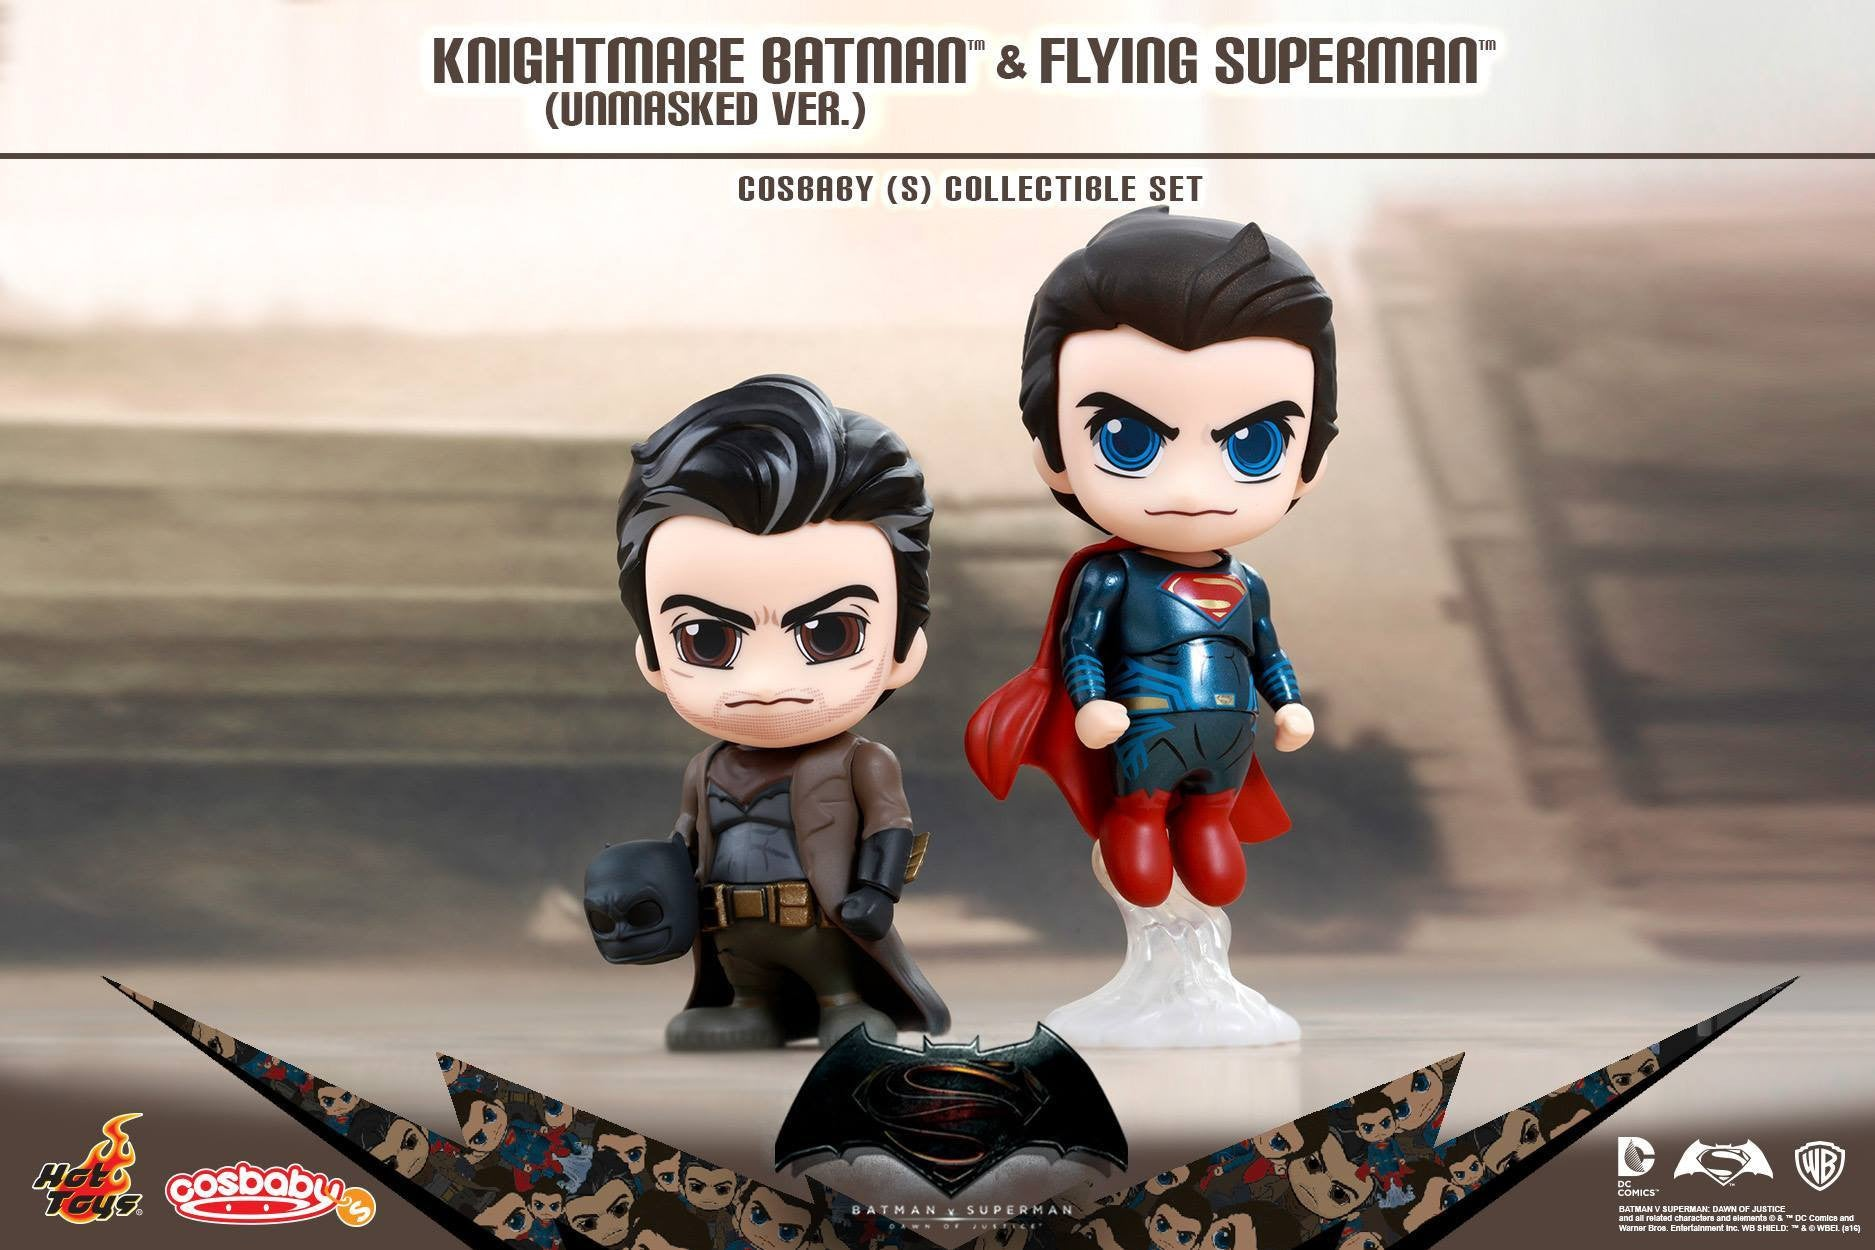 (IN STOCK) Hot Toys - COSB244 - Batman v Superman: Dawn of Justice - Knightmare Batman (Unmasked Version) and Flying Superman Cosbaby (S) Collectible Set - Marvelous Toys - 1